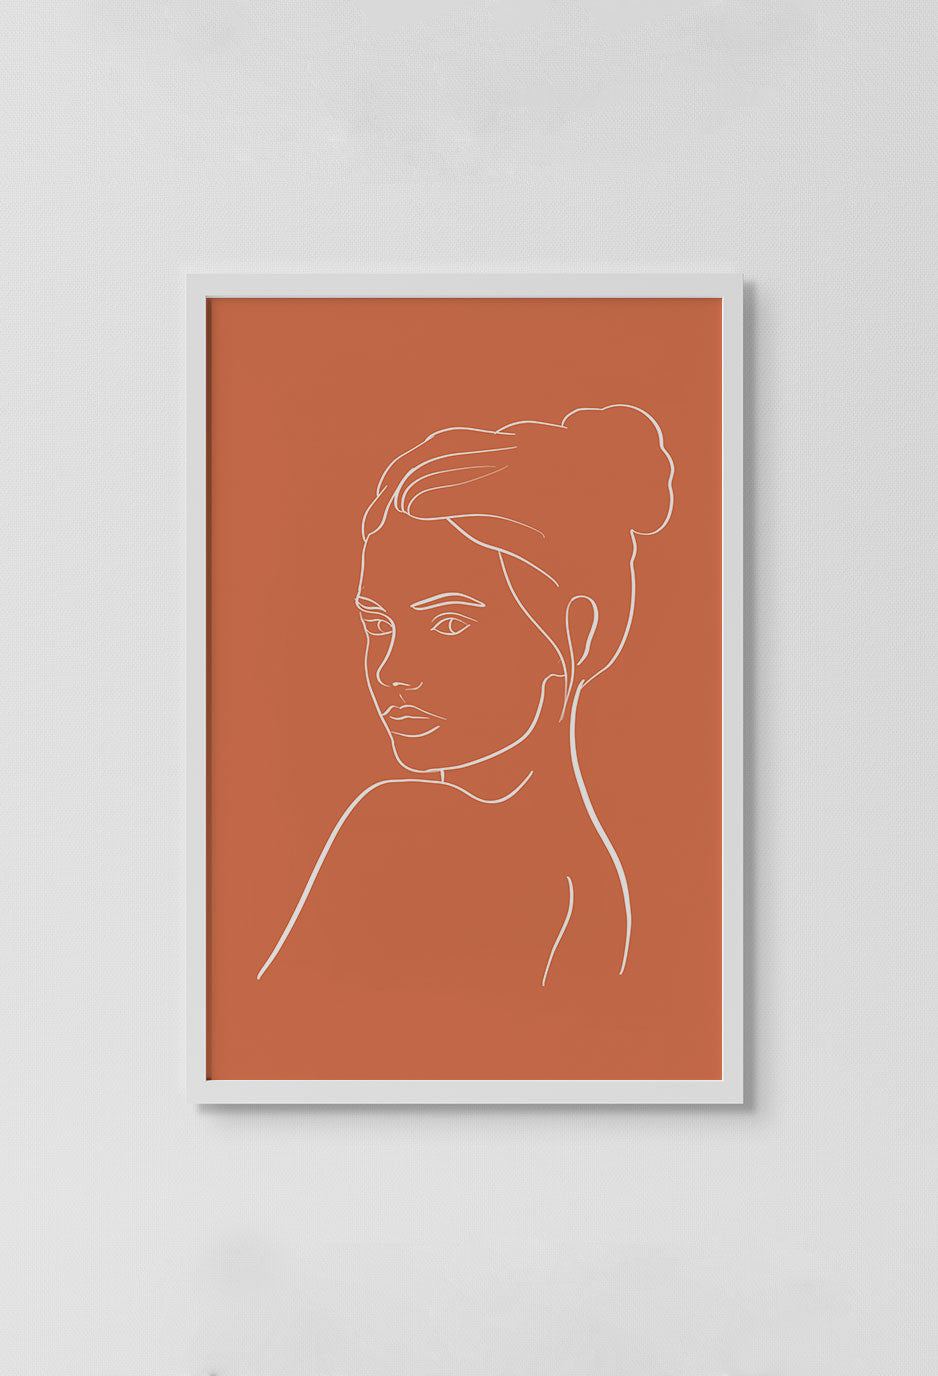 image of print of stencil drawing of a lady with a bun in white with orange background in white frame on white wall.